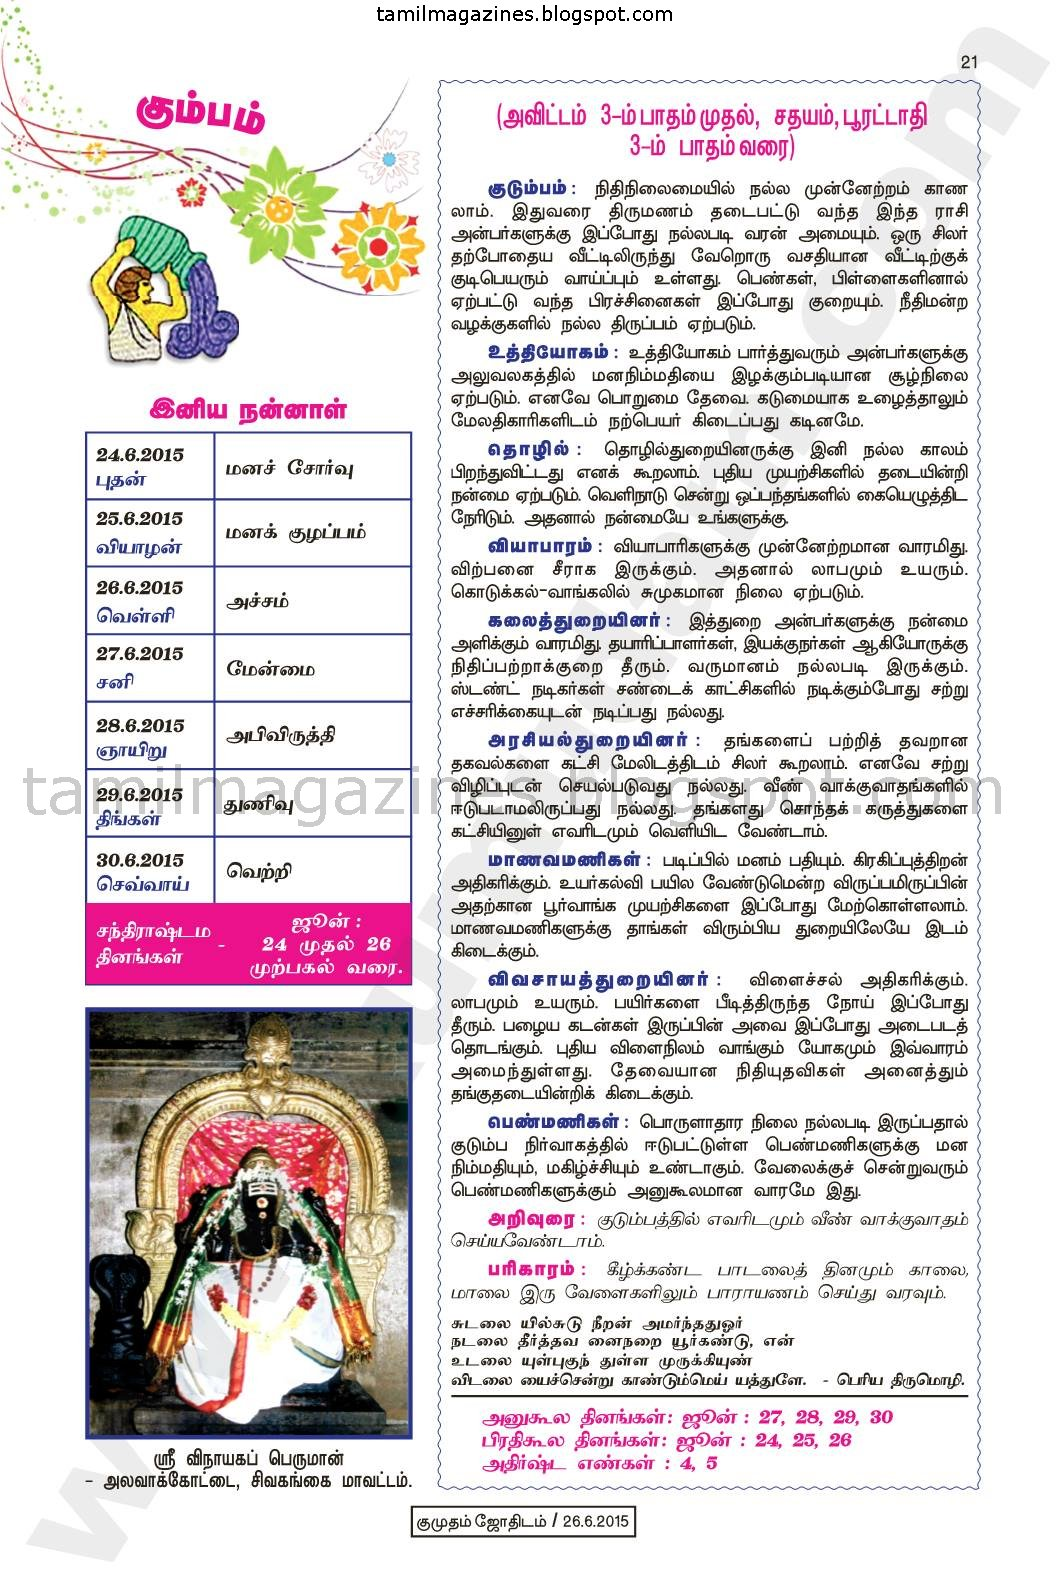 Read Raasi Palan forecast from Kumudam Jothidam for the period June 24